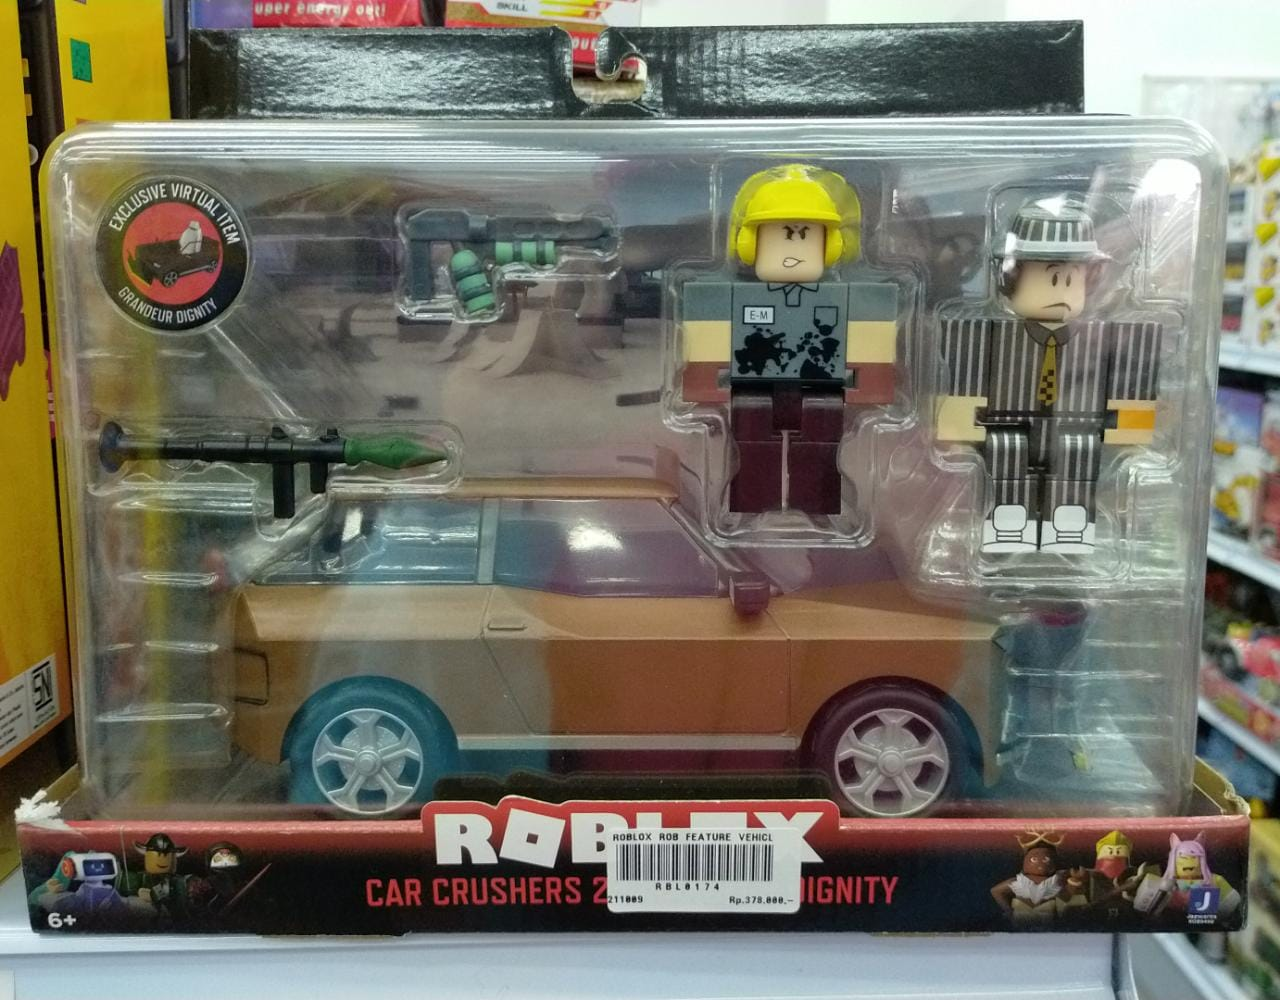 ROBLOX ROB FEATURE VEHICLE